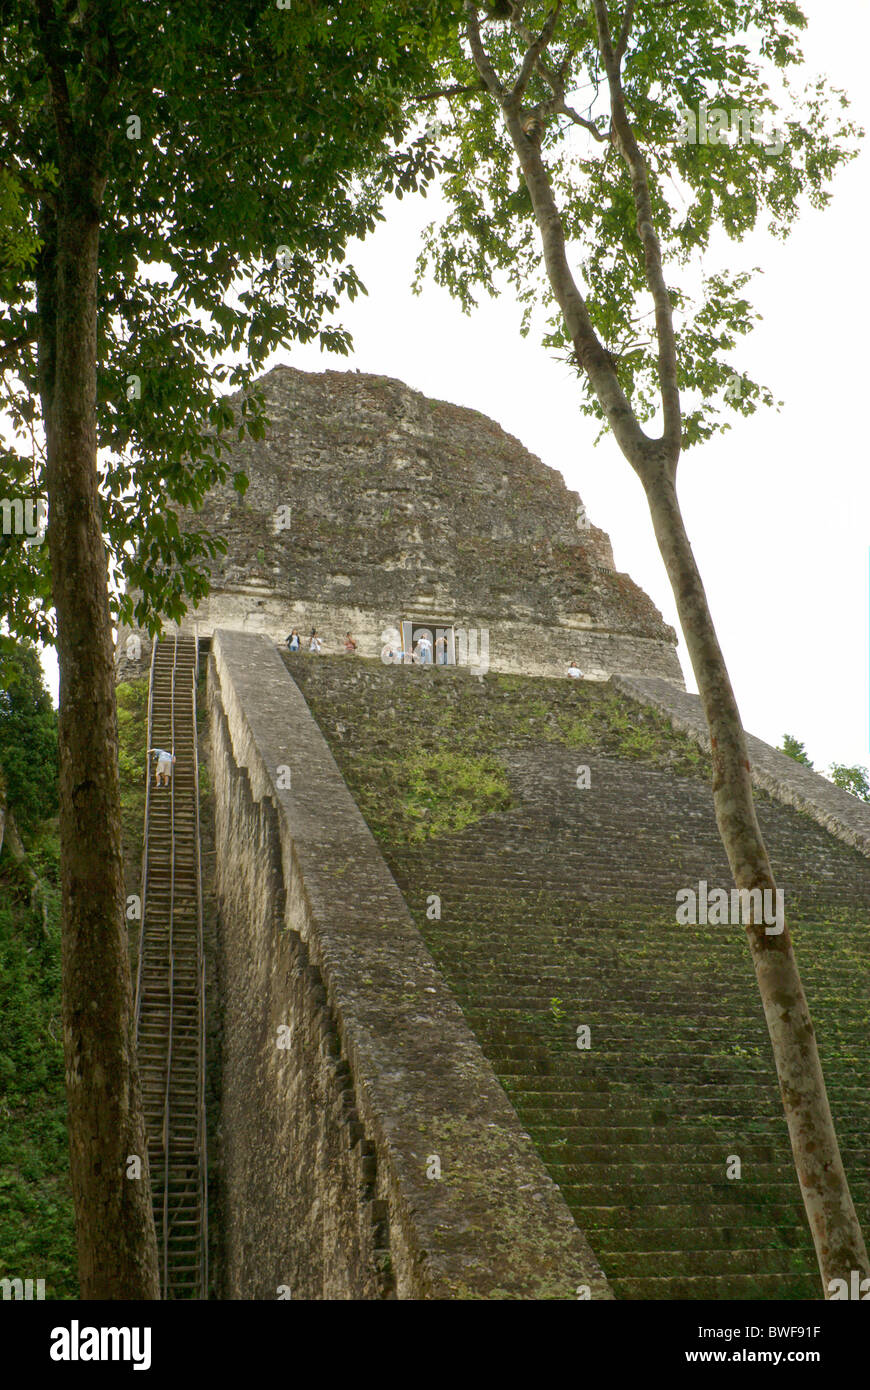 Temple V at the Maya ruins of Tikal, El Peten, Guatemala. Tikal is a UNESCO World Heritage Site. - Stock Image